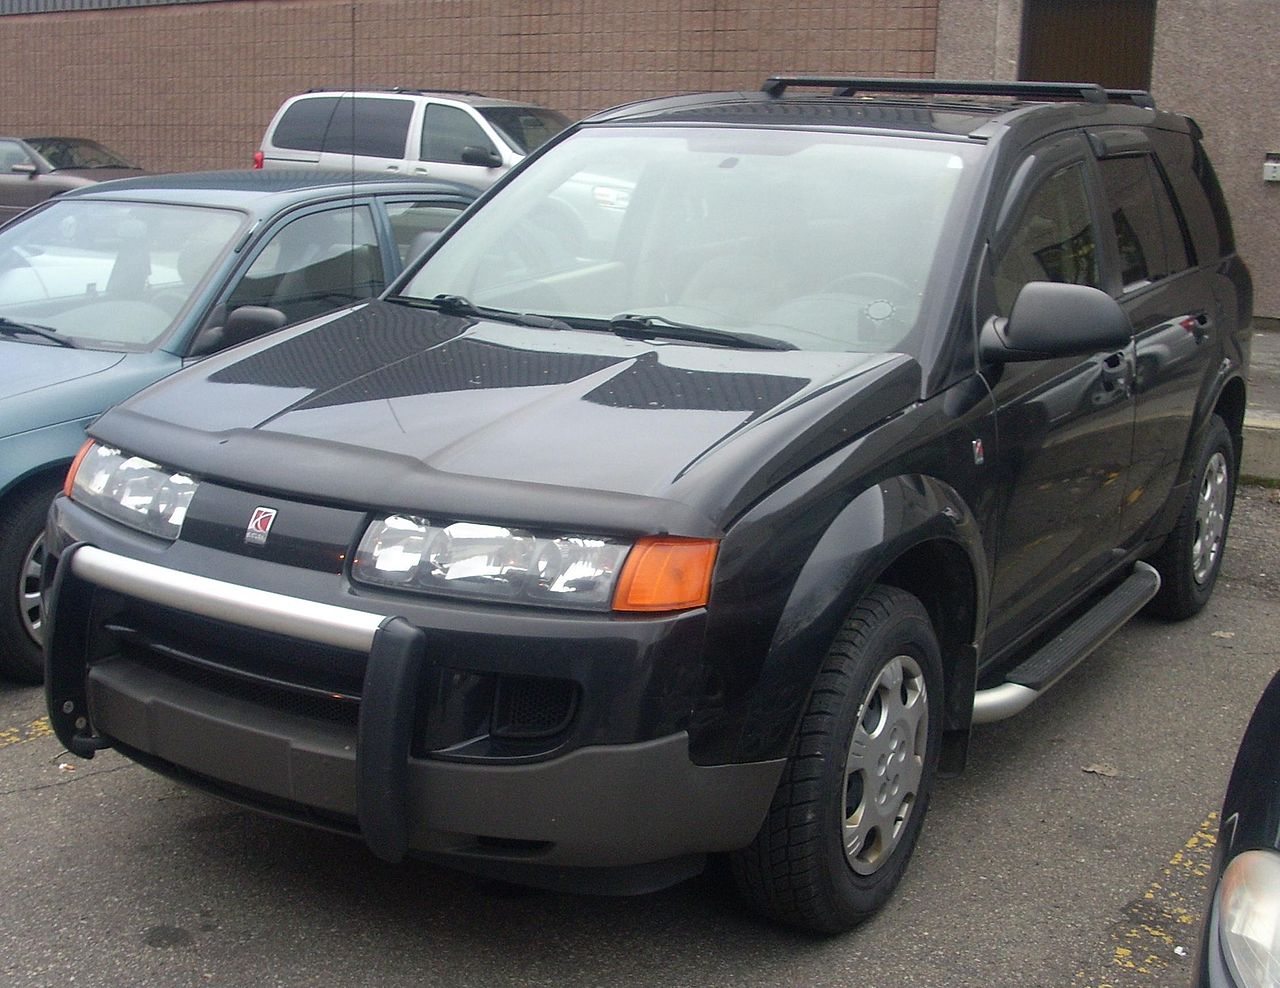 2002 saturn vue information and photos zombiedrive. Black Bedroom Furniture Sets. Home Design Ideas